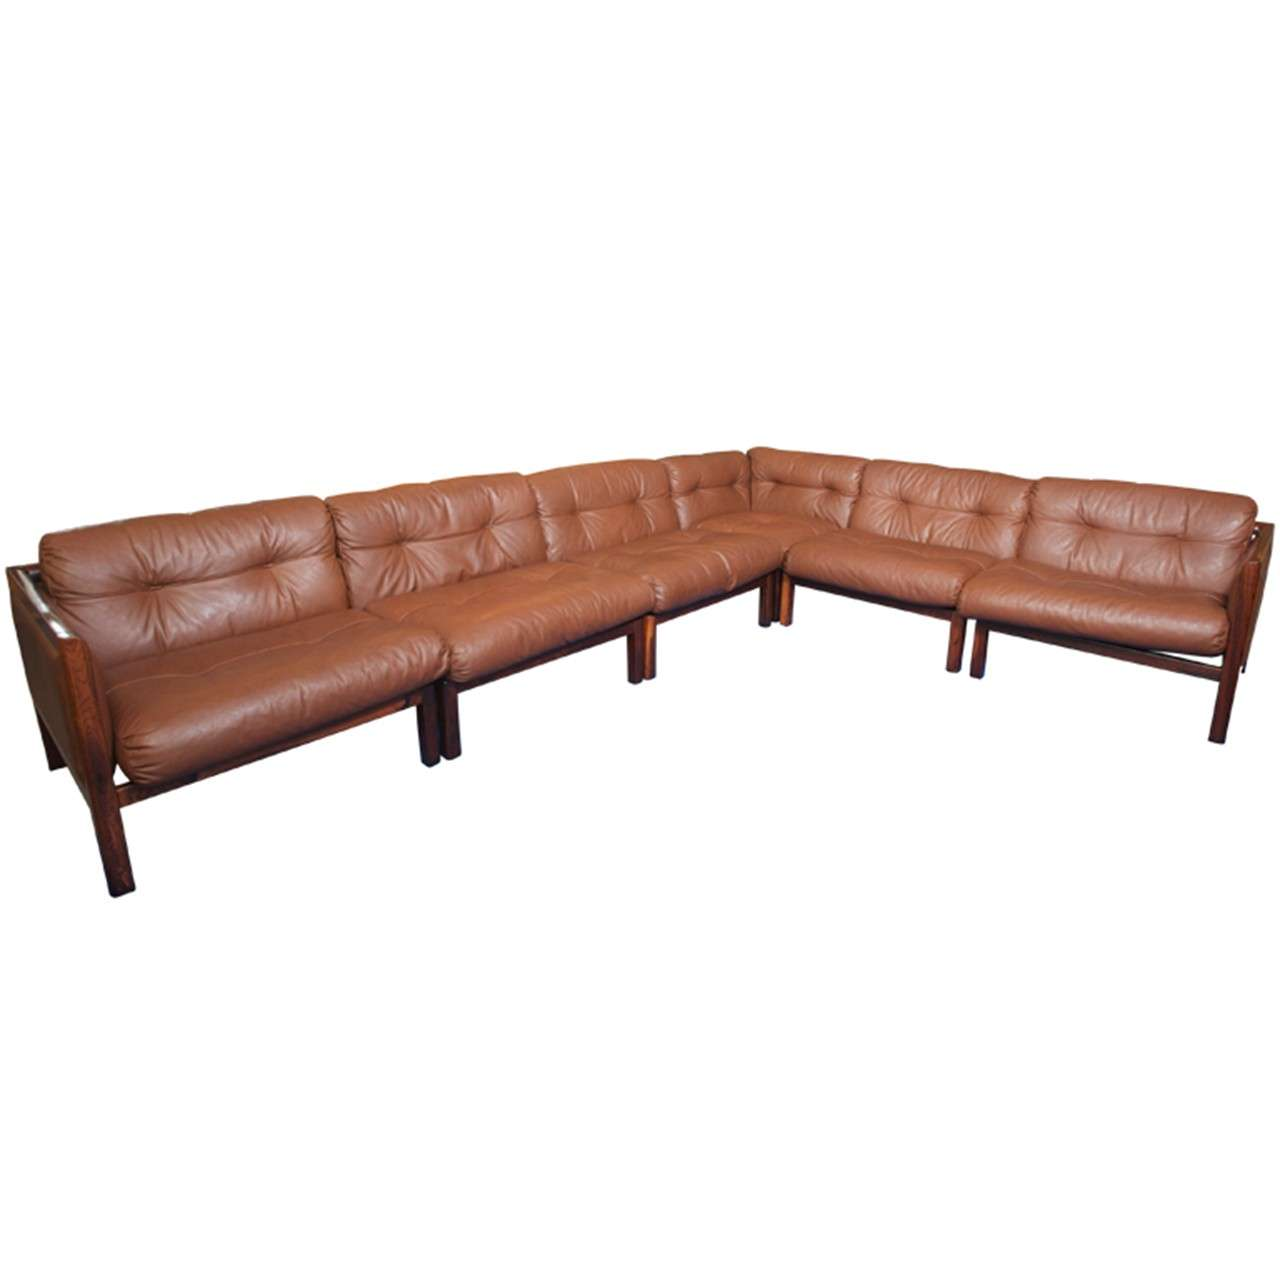 xl 1970 39 s danish rosewood and leather modular sofa. Black Bedroom Furniture Sets. Home Design Ideas